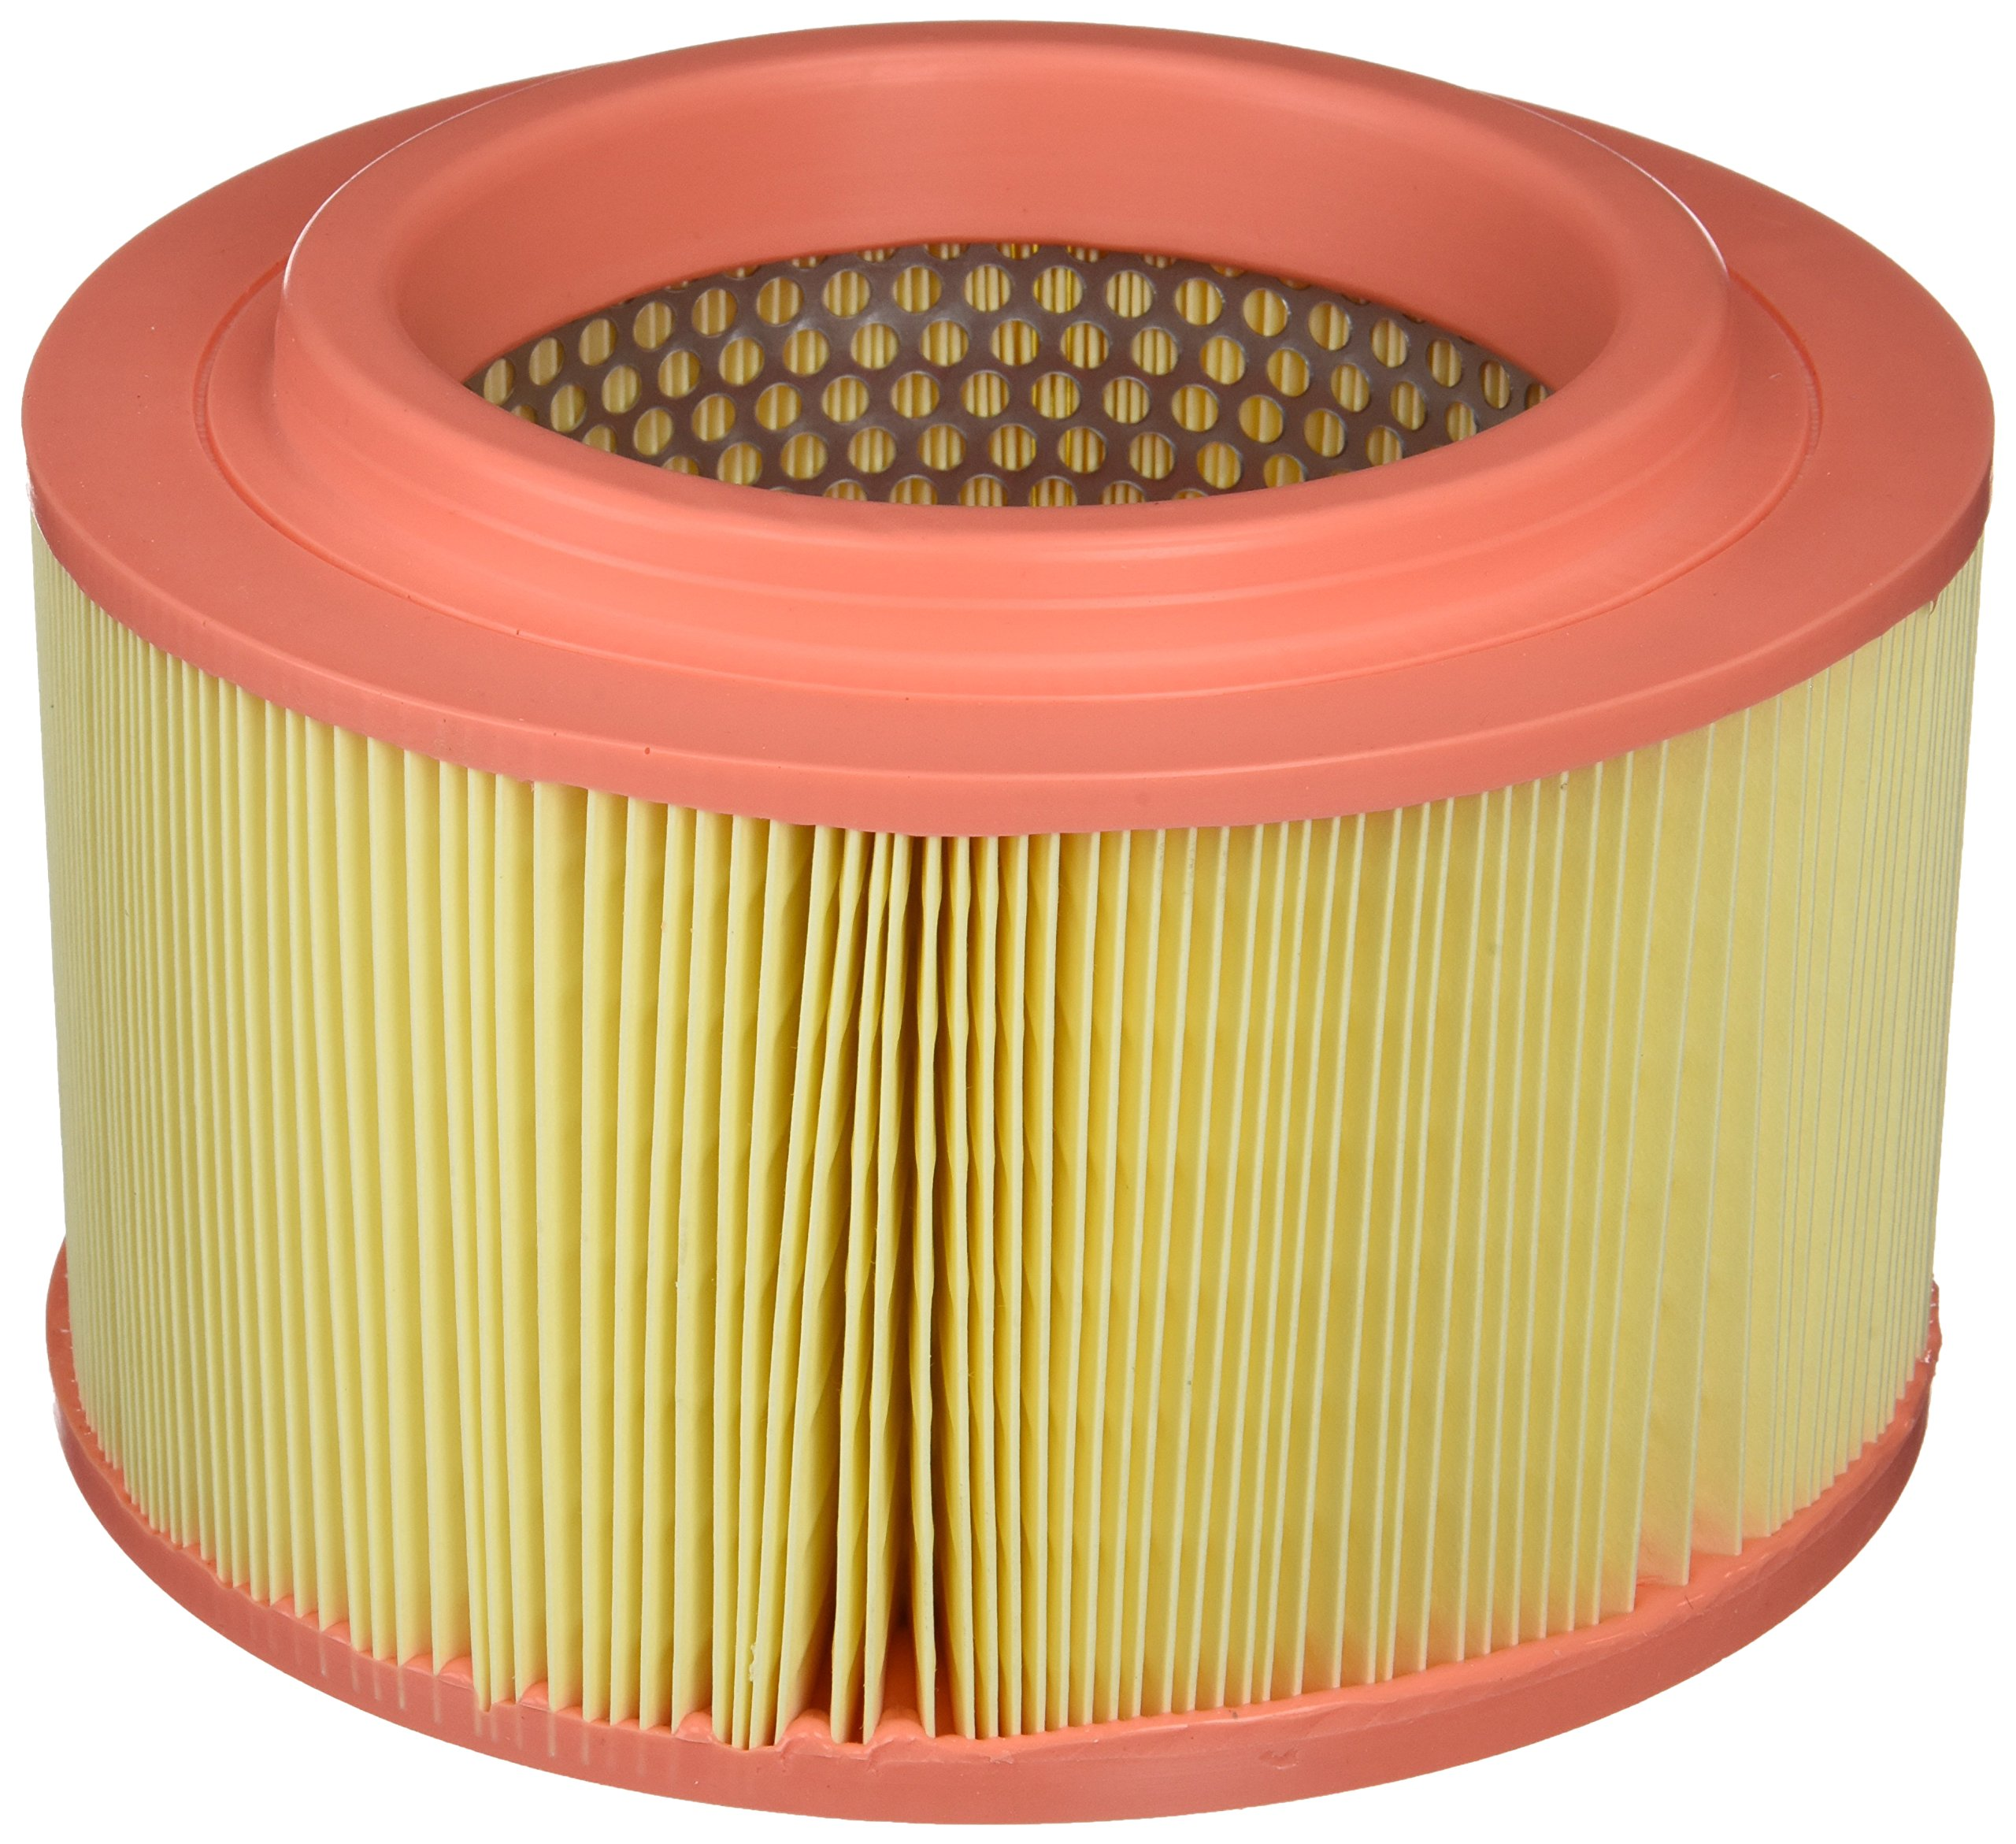 IPS PART j|ifa-3306 Air Filter by Ips Parts